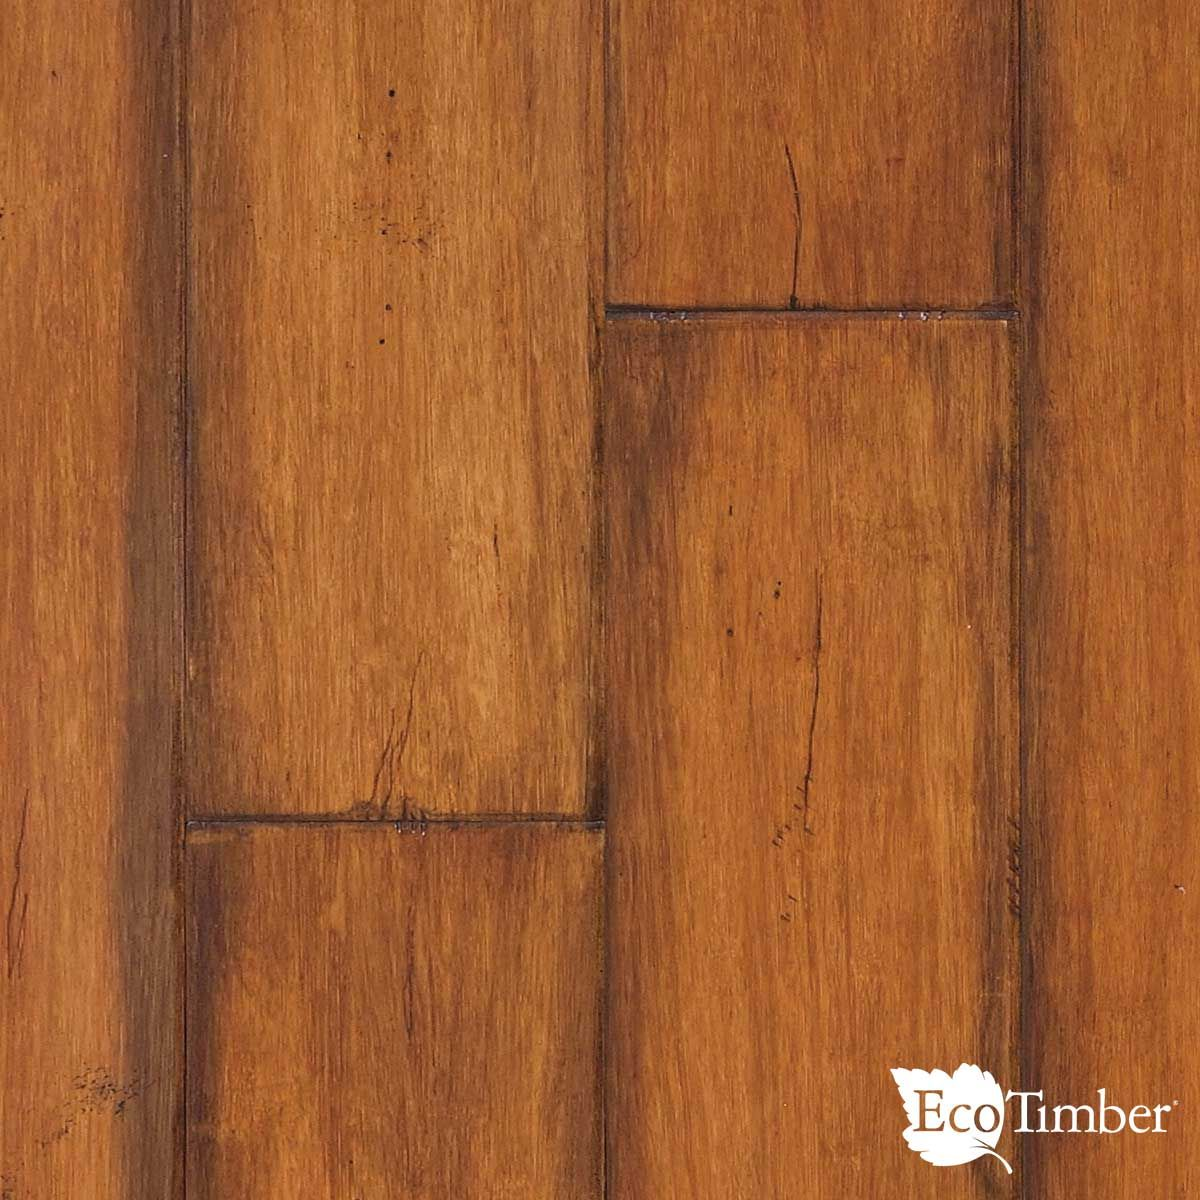 5 Strand Bamboo Antique Toffee An Eco Friendly Engineered Bamboo Flooring Option From Ecotimber Engineered Bamboo Flooring Bamboo Flooring Flooring Options